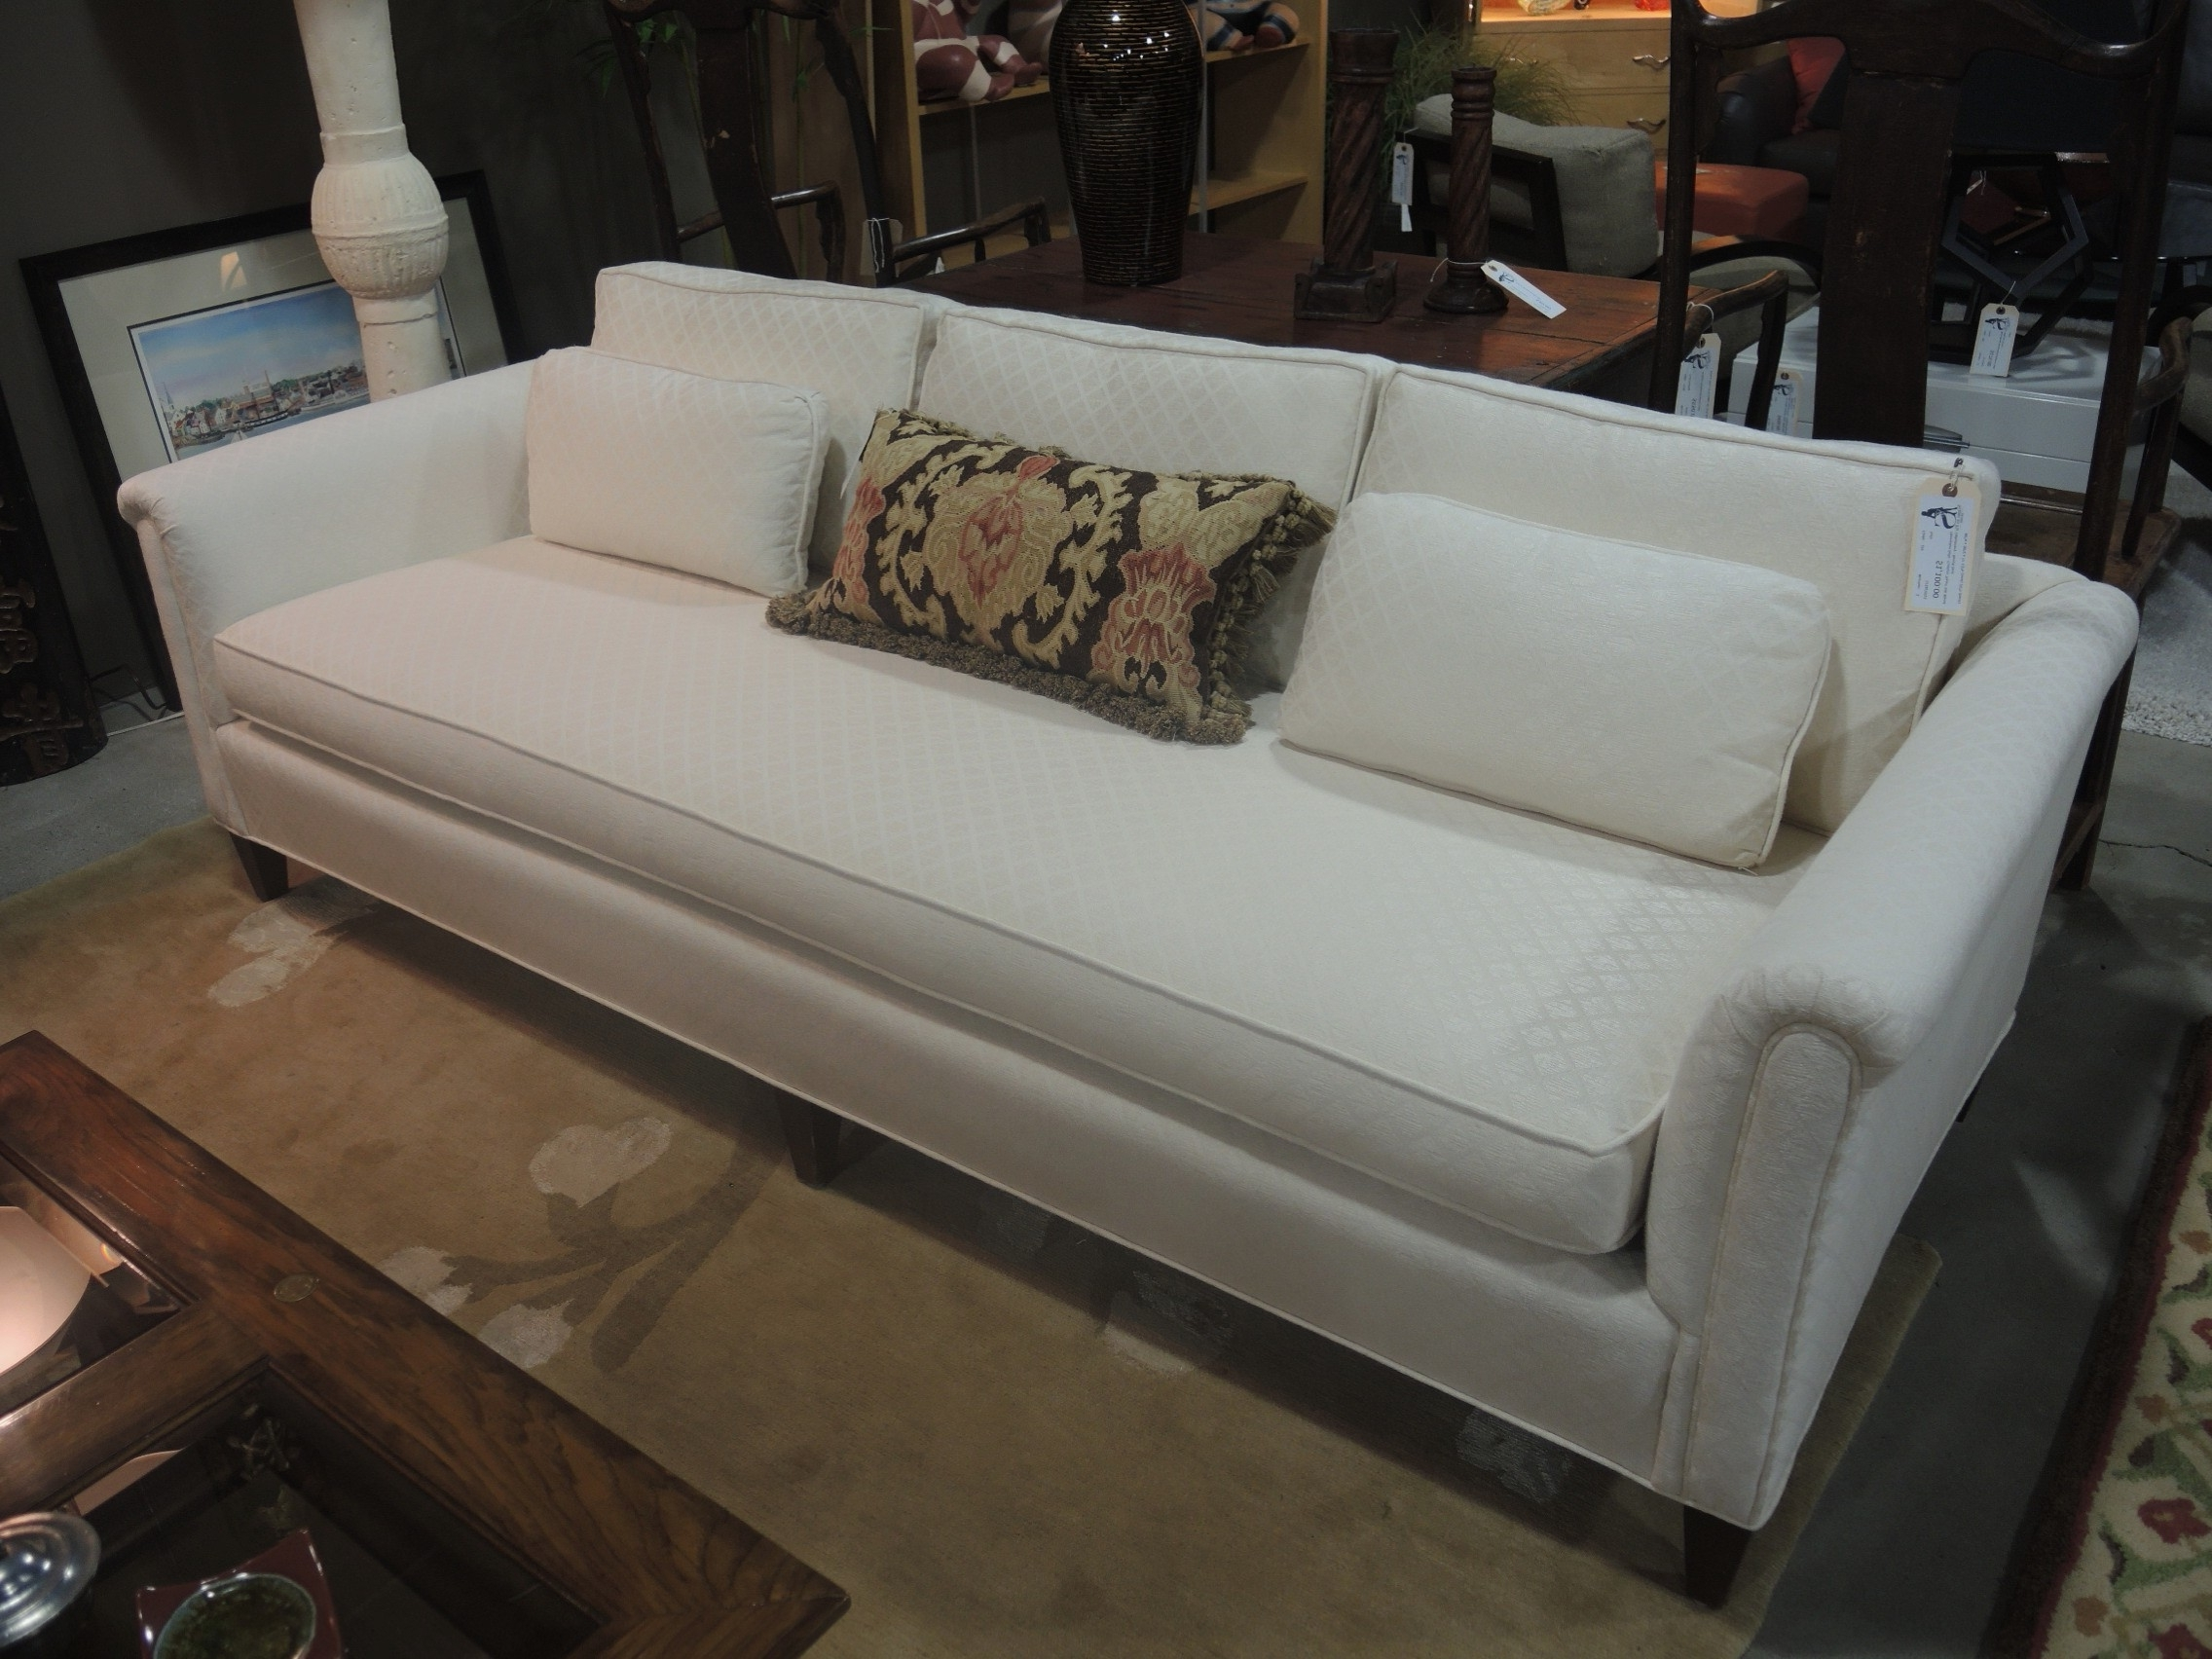 2018 One Cushion Sofas Inside Sofas : Sofa Throws Loveseat Couch Corner Sofa One Cushion Couch (View 3 of 15)